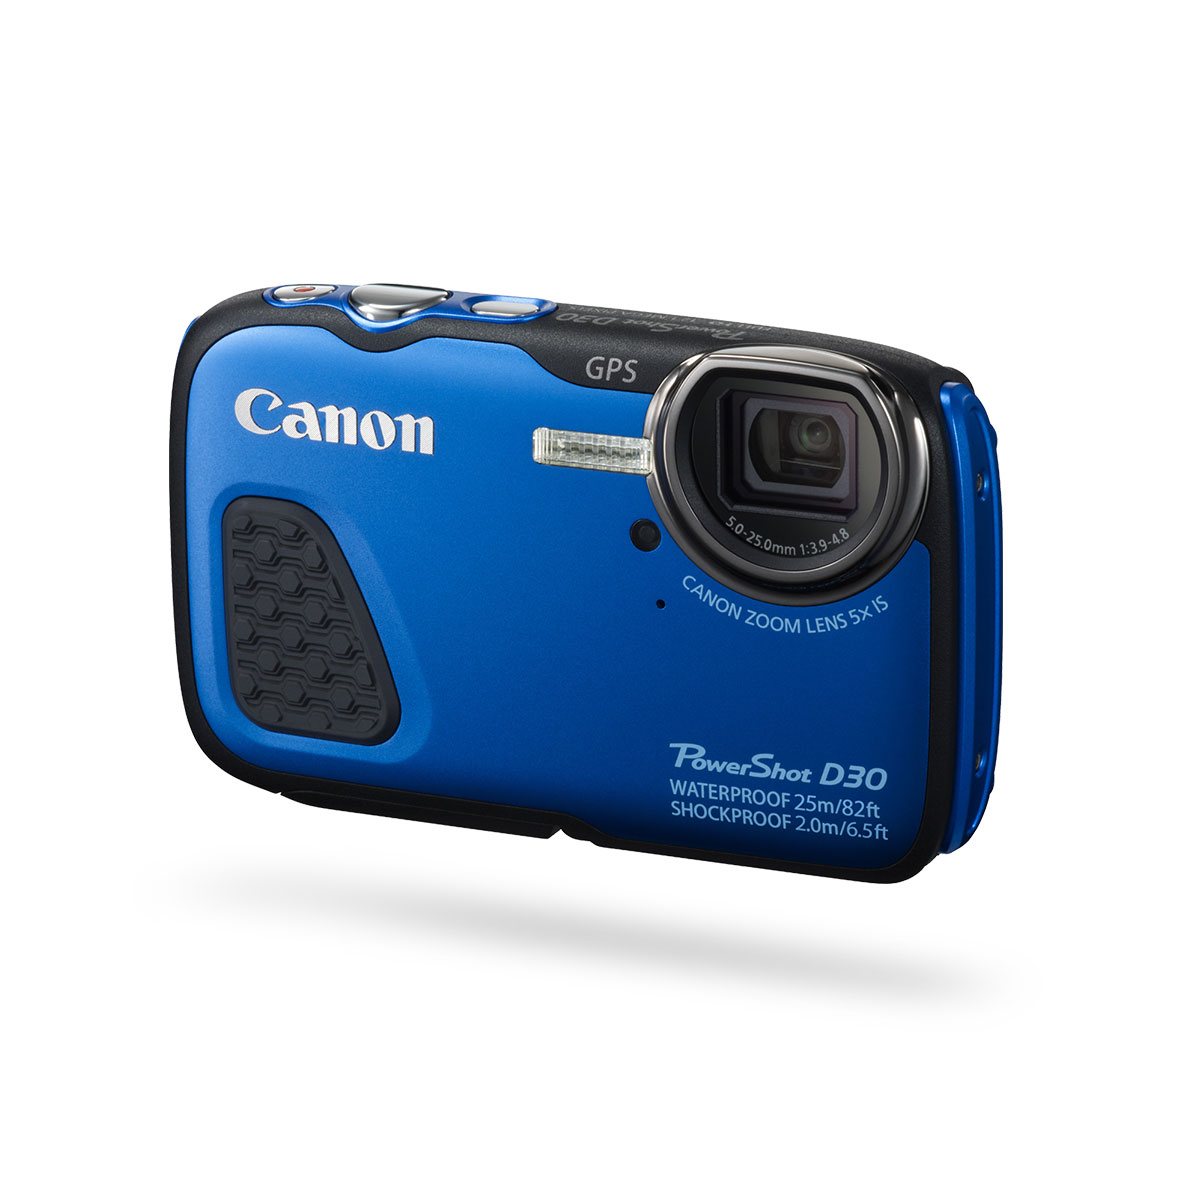 Canon PowerShot D30 digital camera Front View on Angle